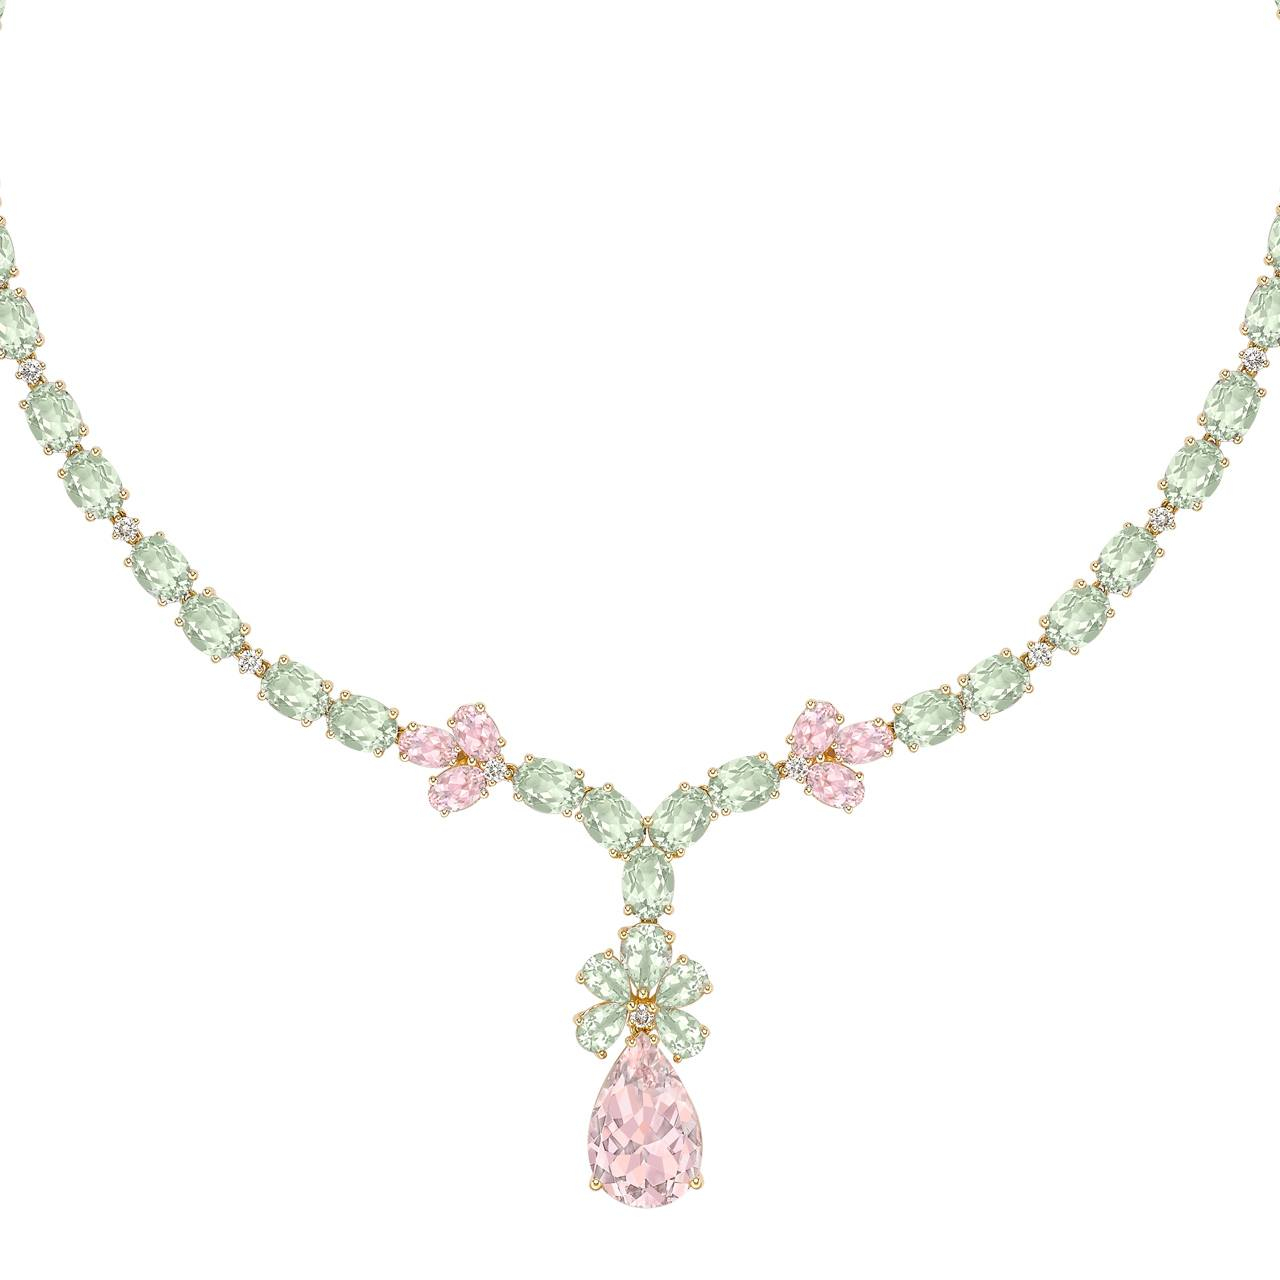 Special Edition Morganite, Green Amethyst And Diamond Necklace In Yellow  Gold Intended For Best And Newest Diamond Necklaces In Yellow Gold (View 23 of 25)